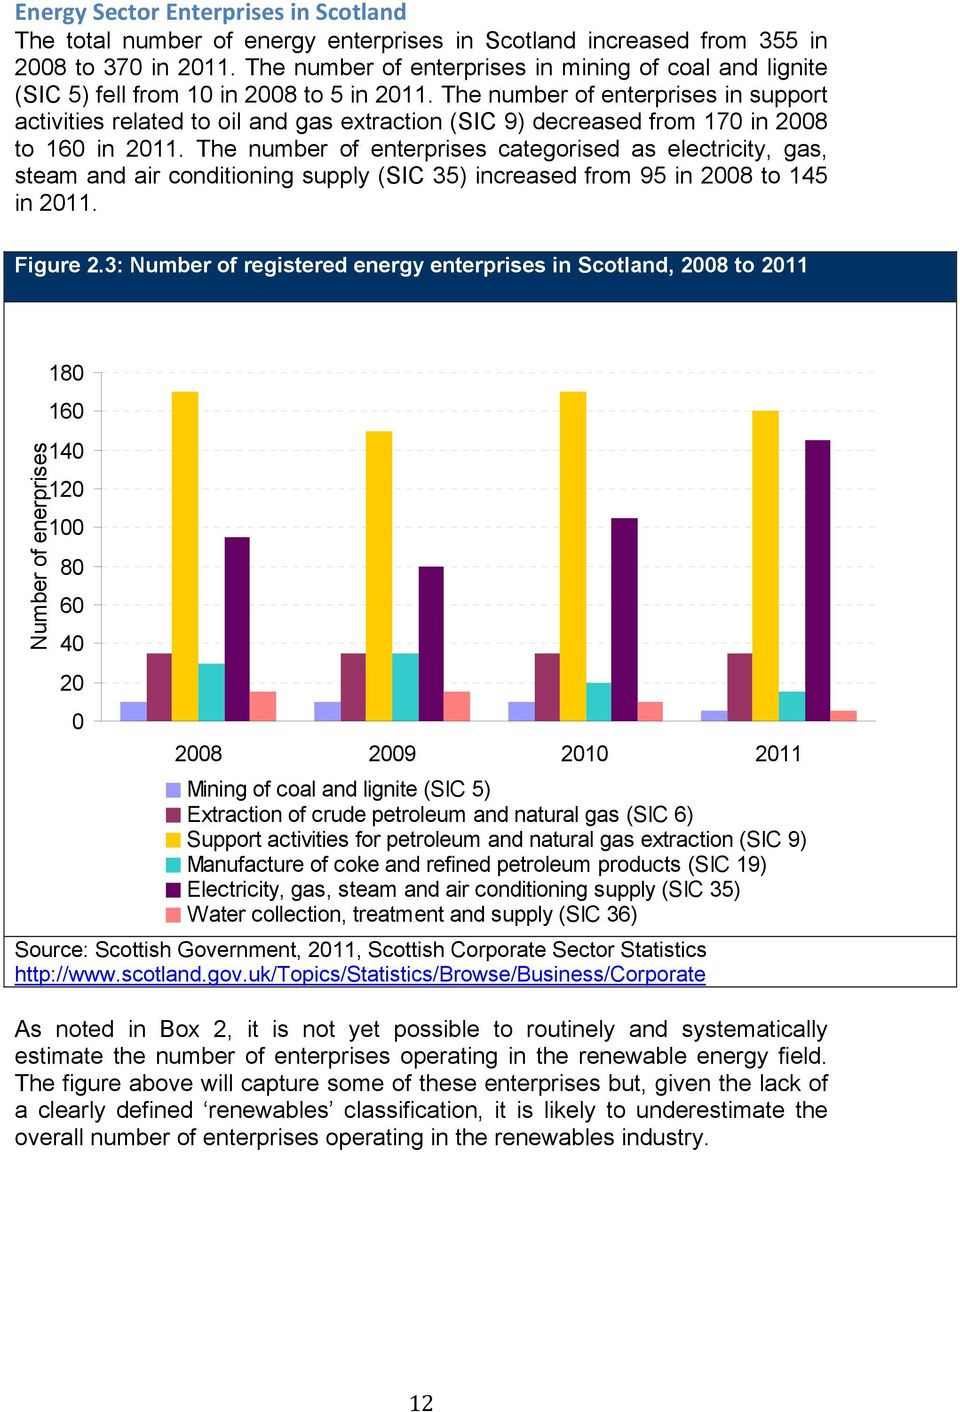 The number of enterprises in support activities related to oil and gas extraction (SIC 9) decreased from 170 in 2008 to 160 in 2011.